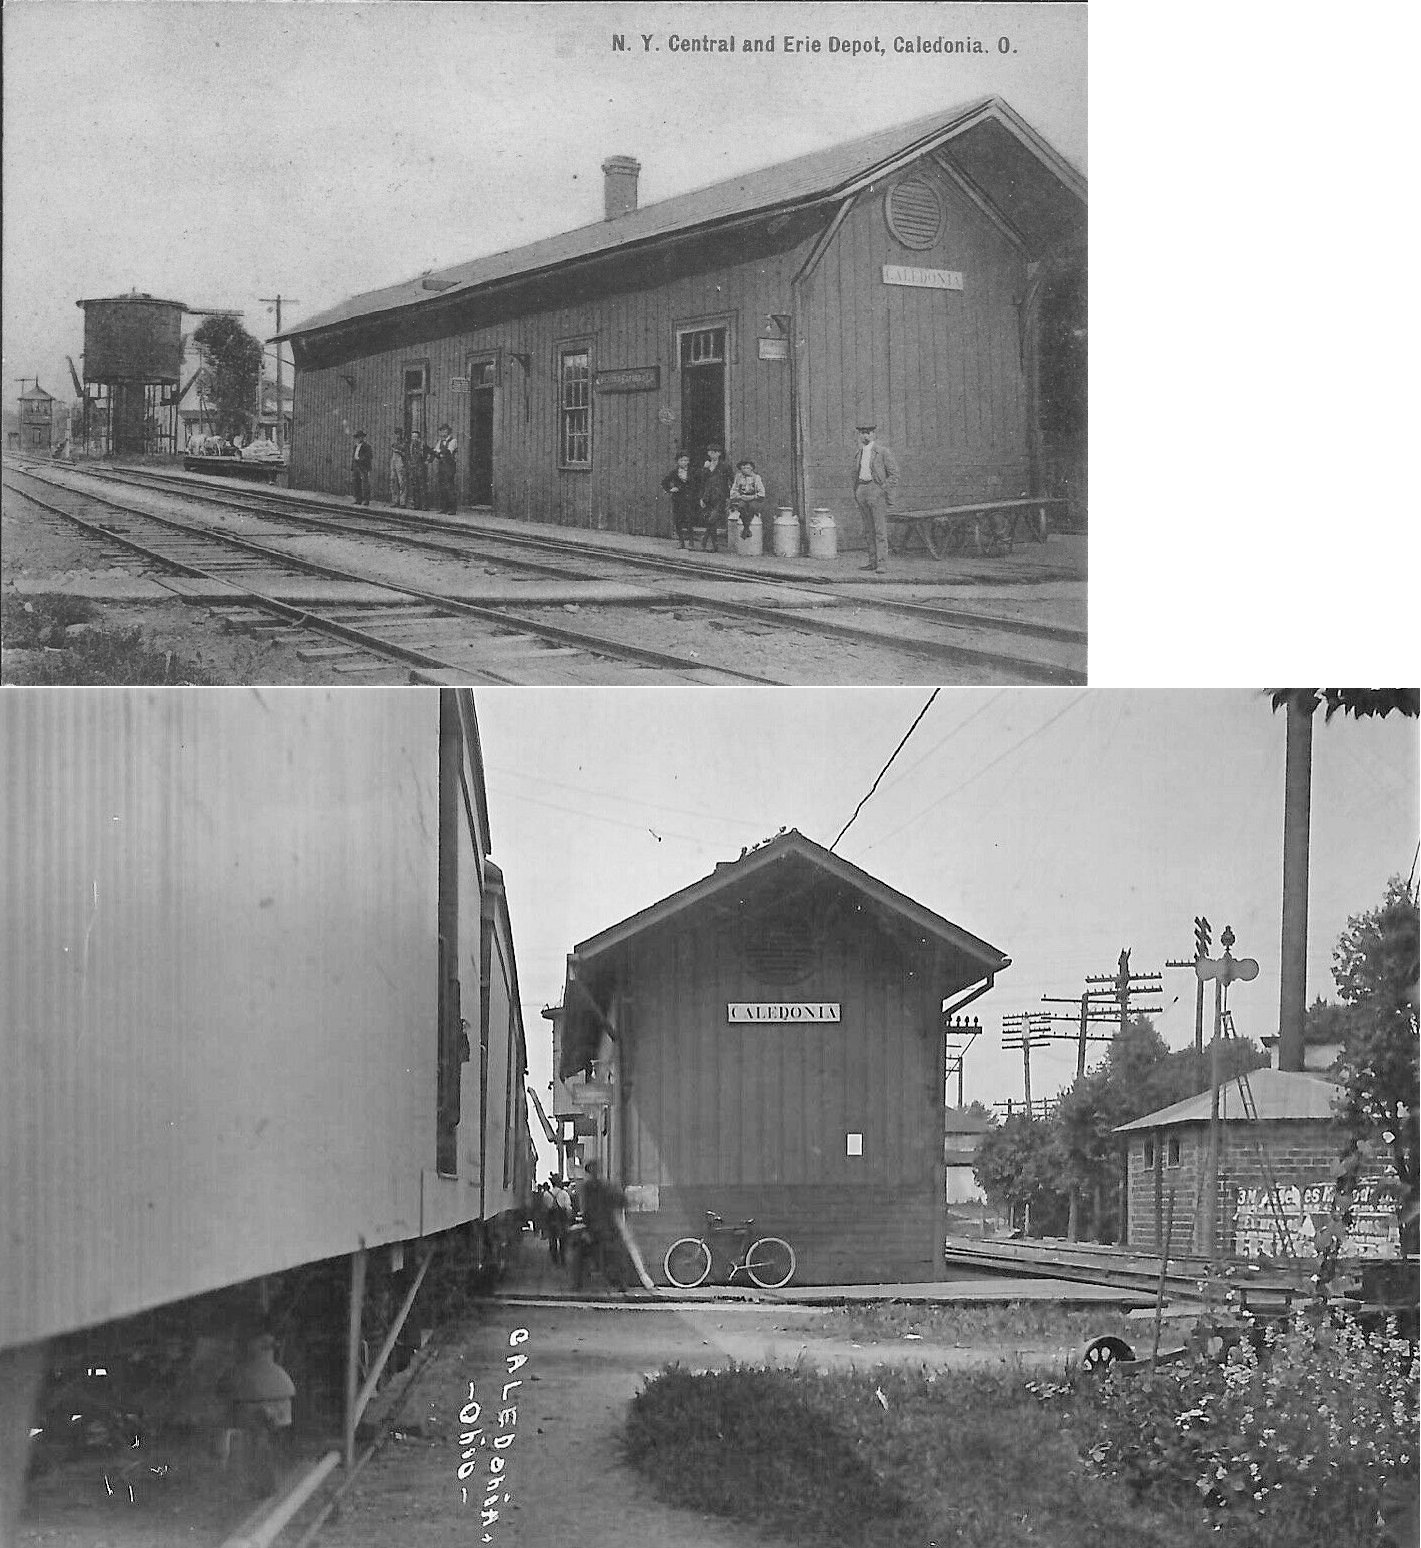 Marion County Ohio Railroad Stations